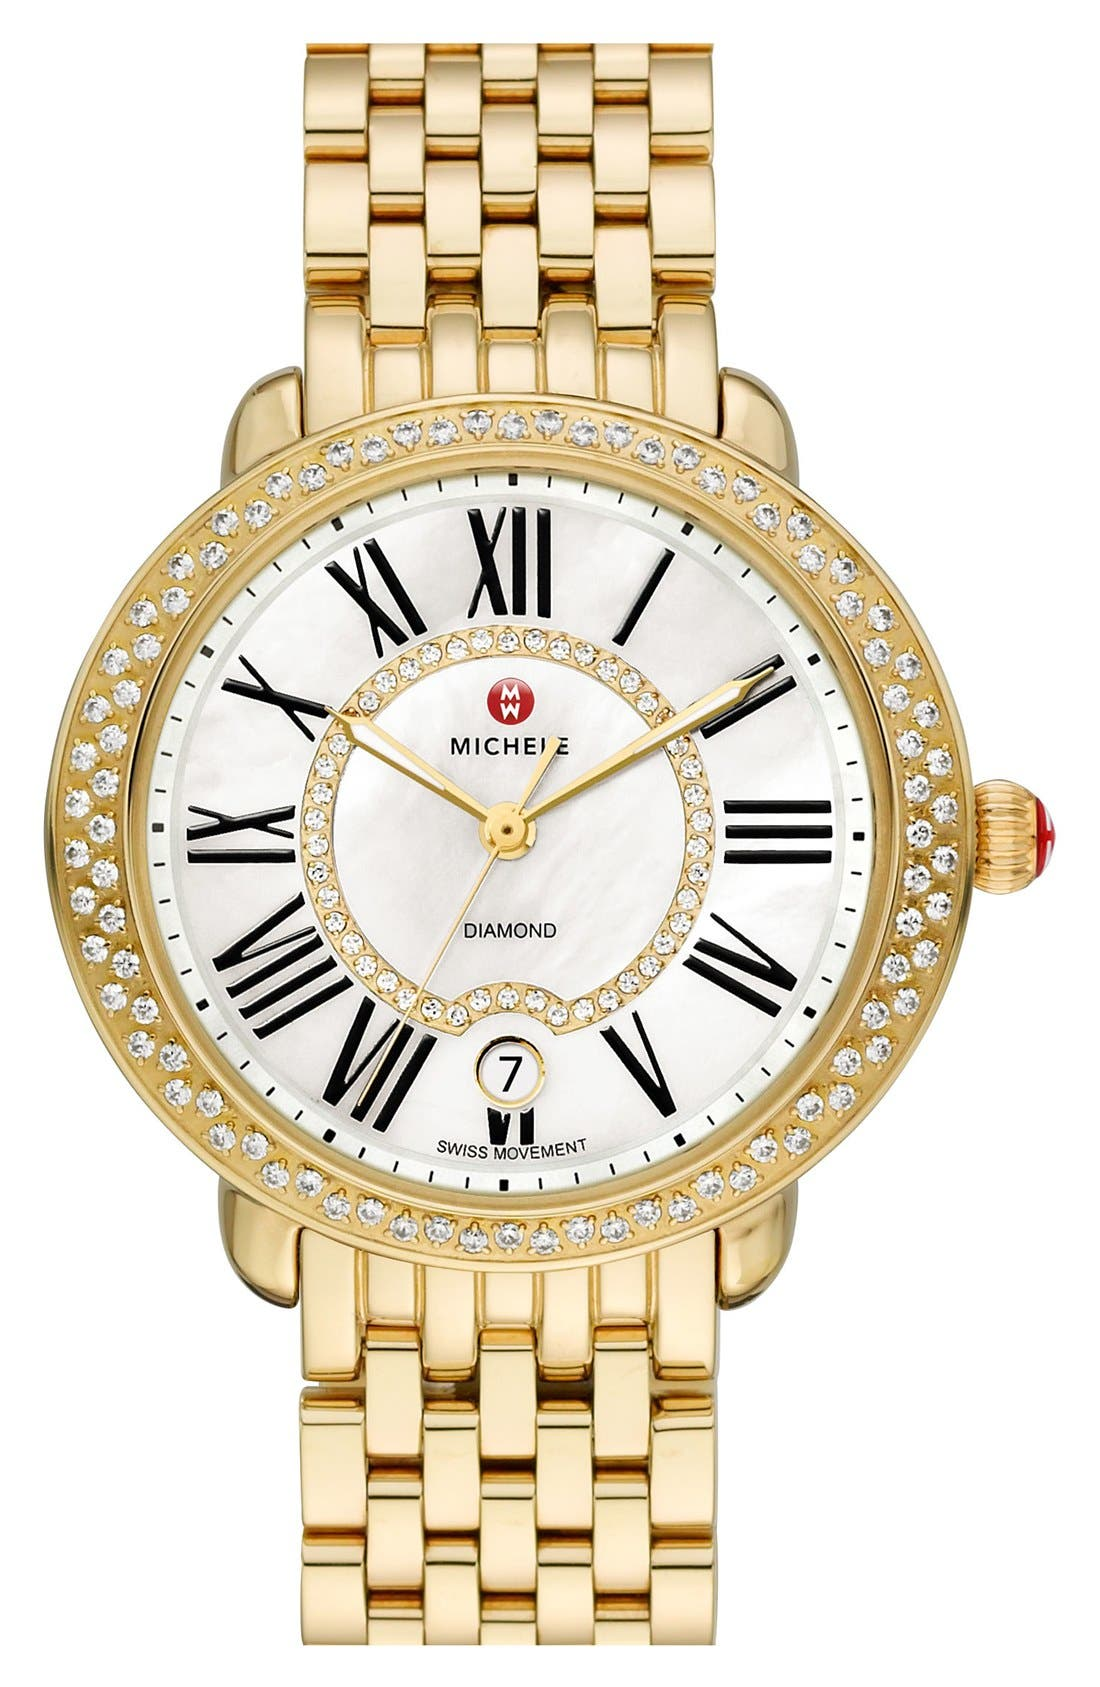 Serein 16 Diamond Gold Plated Watch Case, 34mm x 36mm,                             Alternate thumbnail 7, color,                             GOLD